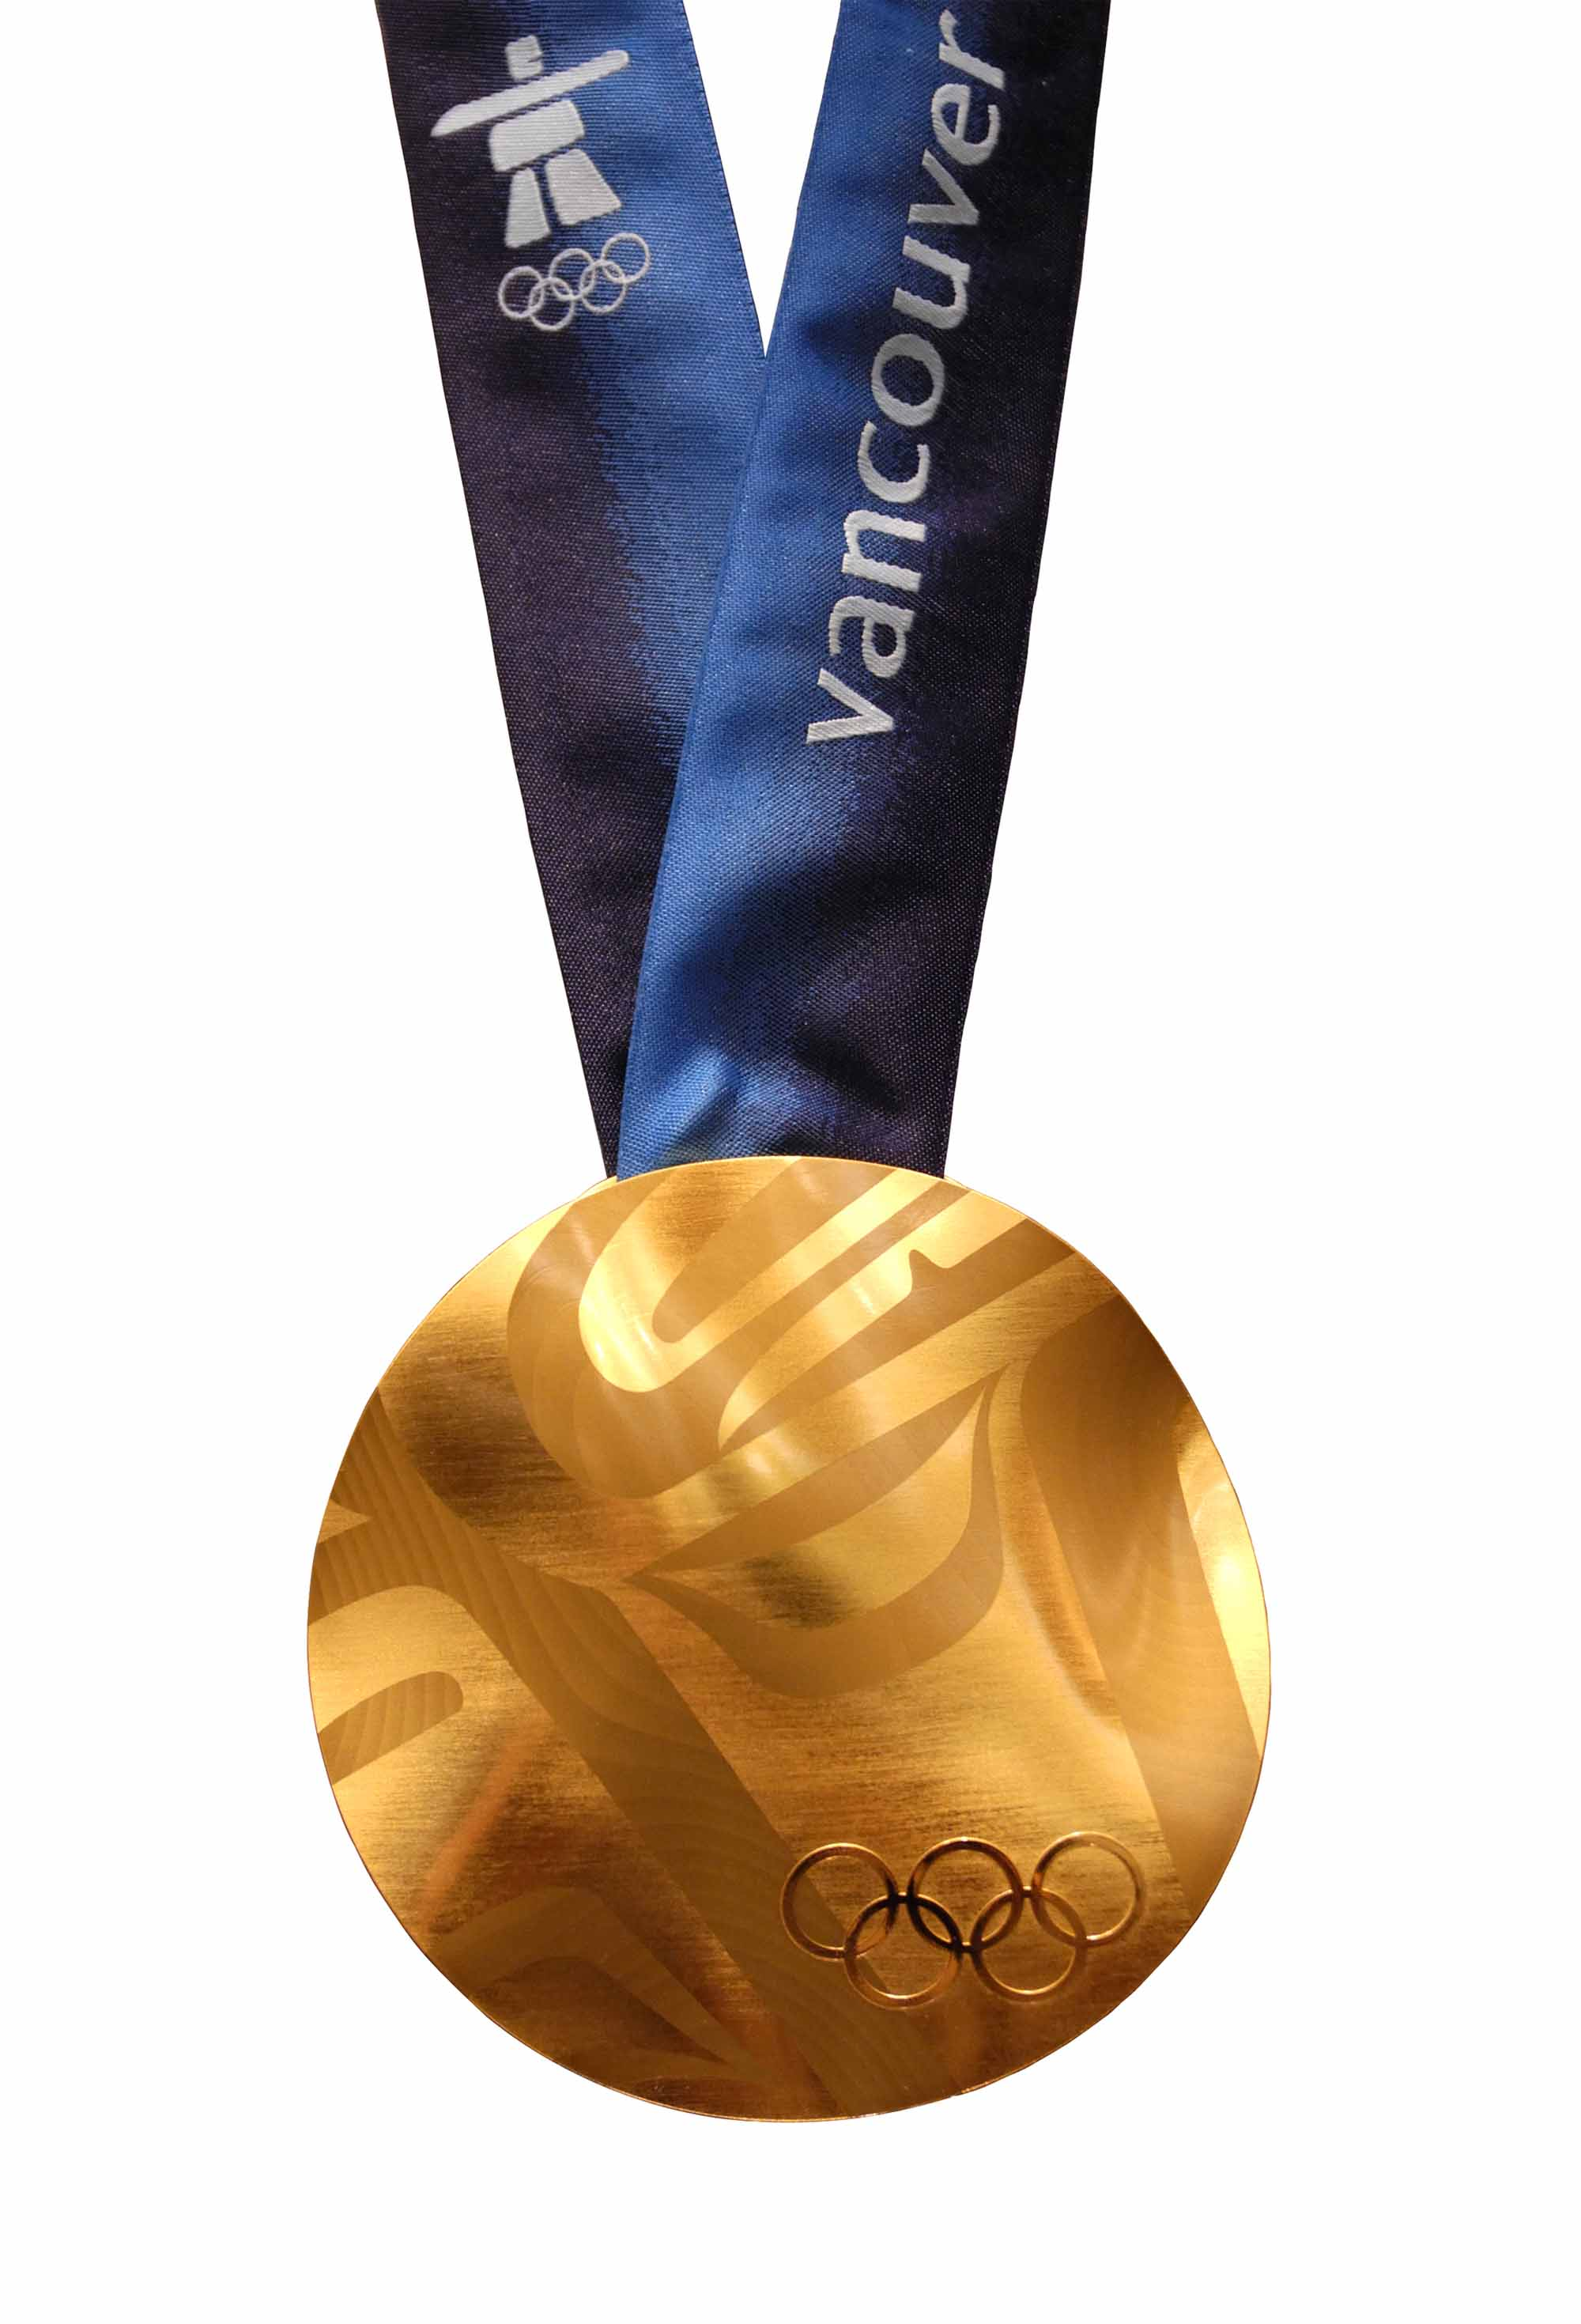 2010 Olympic Gold